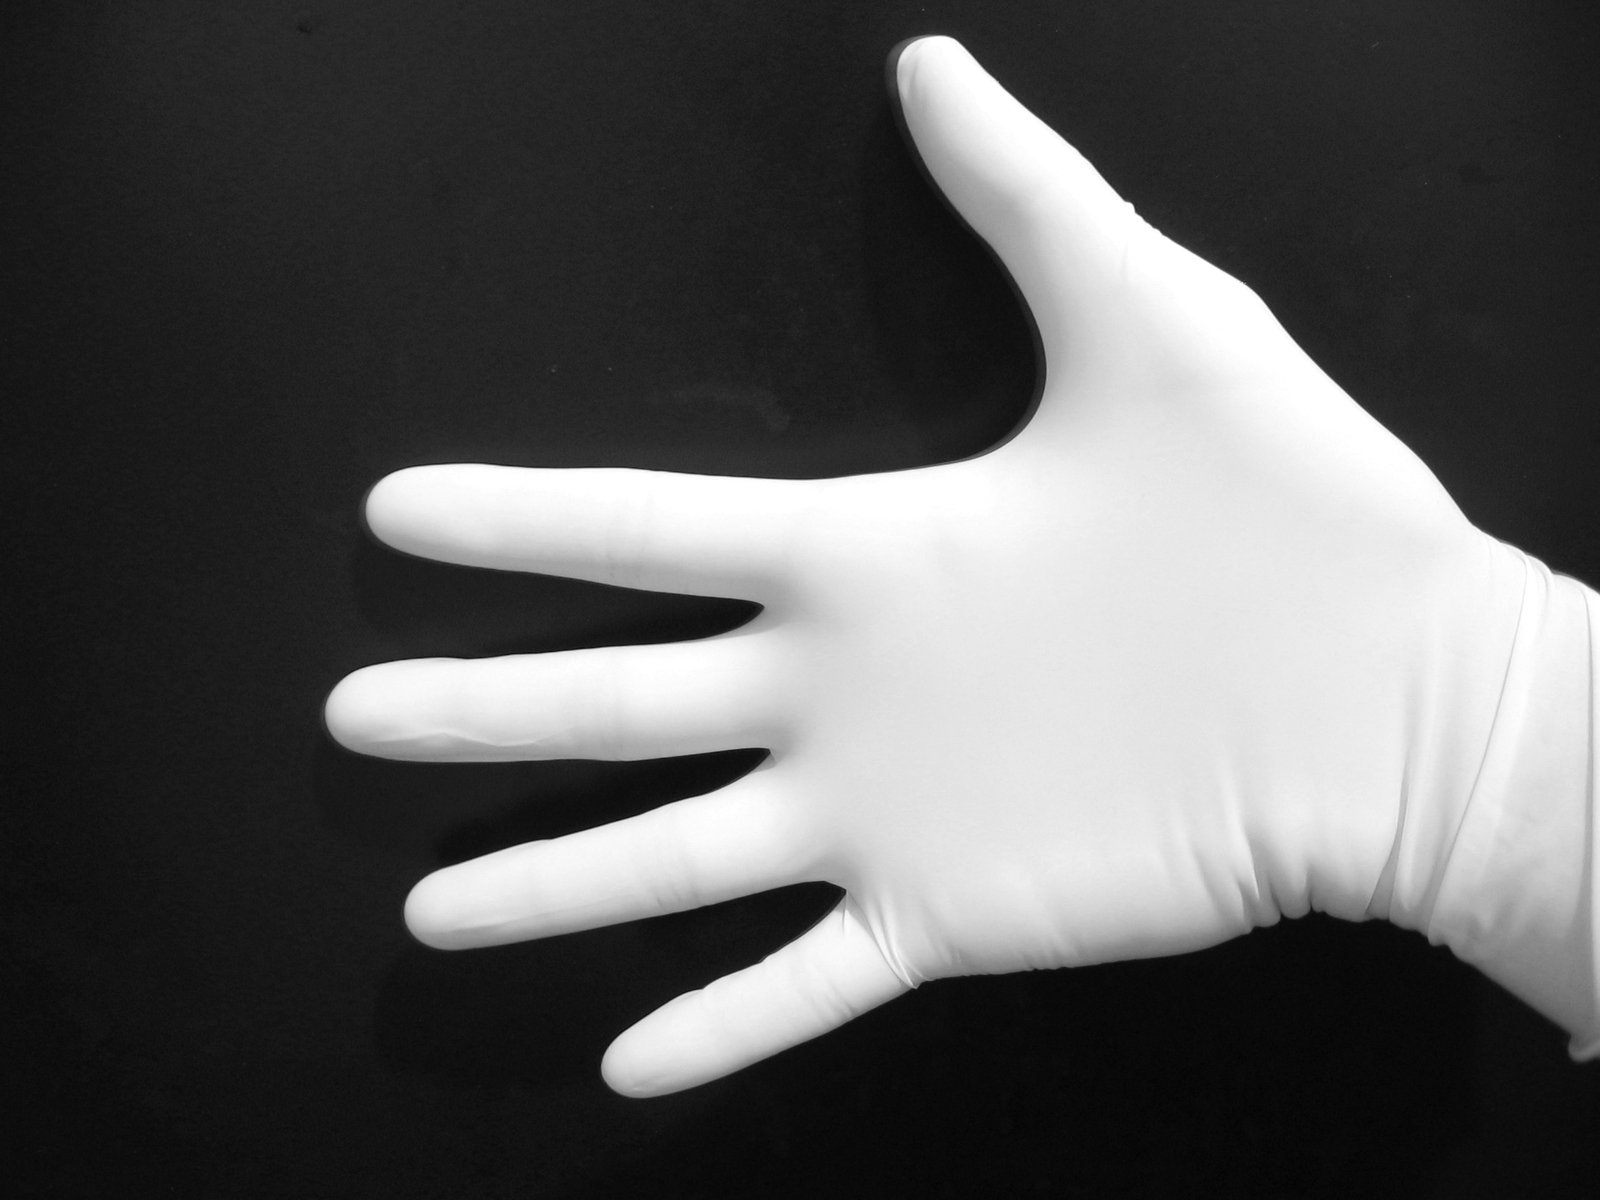 Gloves and hands